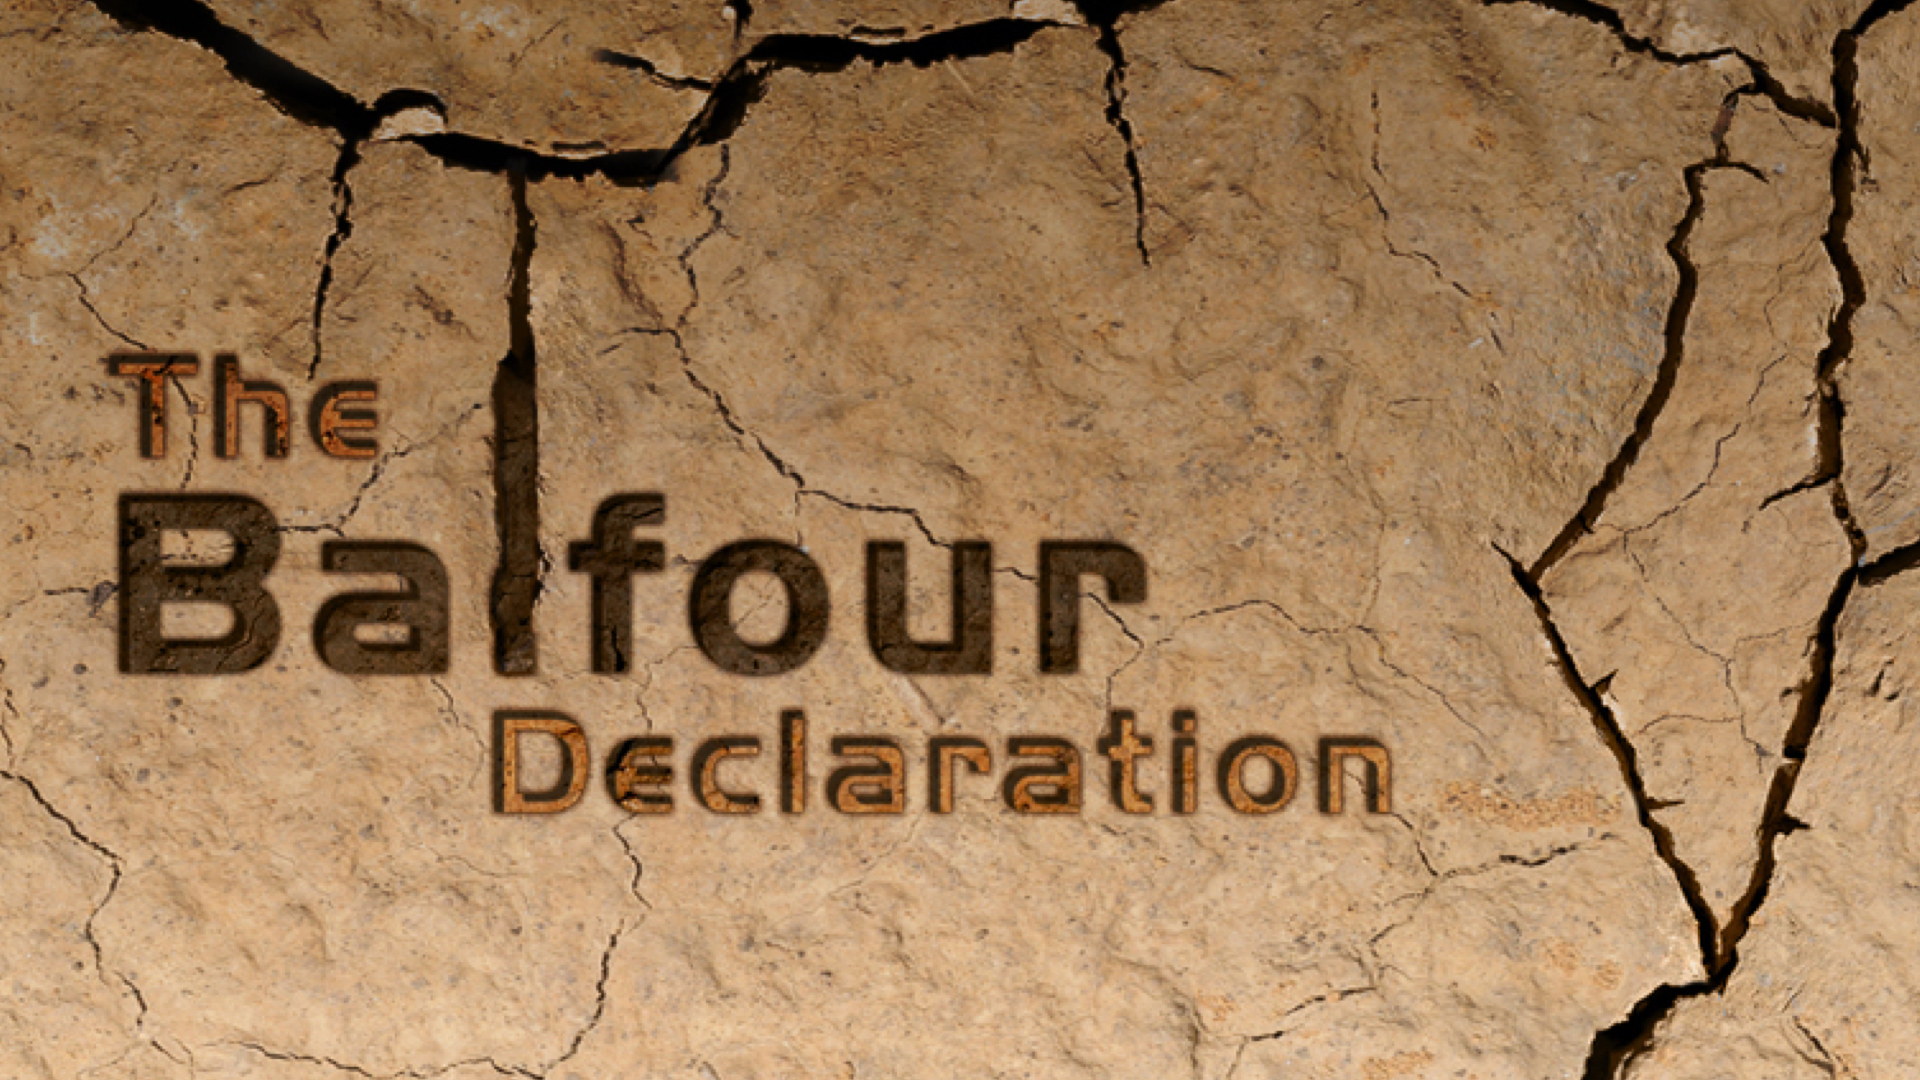 """The Balfour Declaration""documentary film on Al Jazeera Arabic, produced by Noon Films"